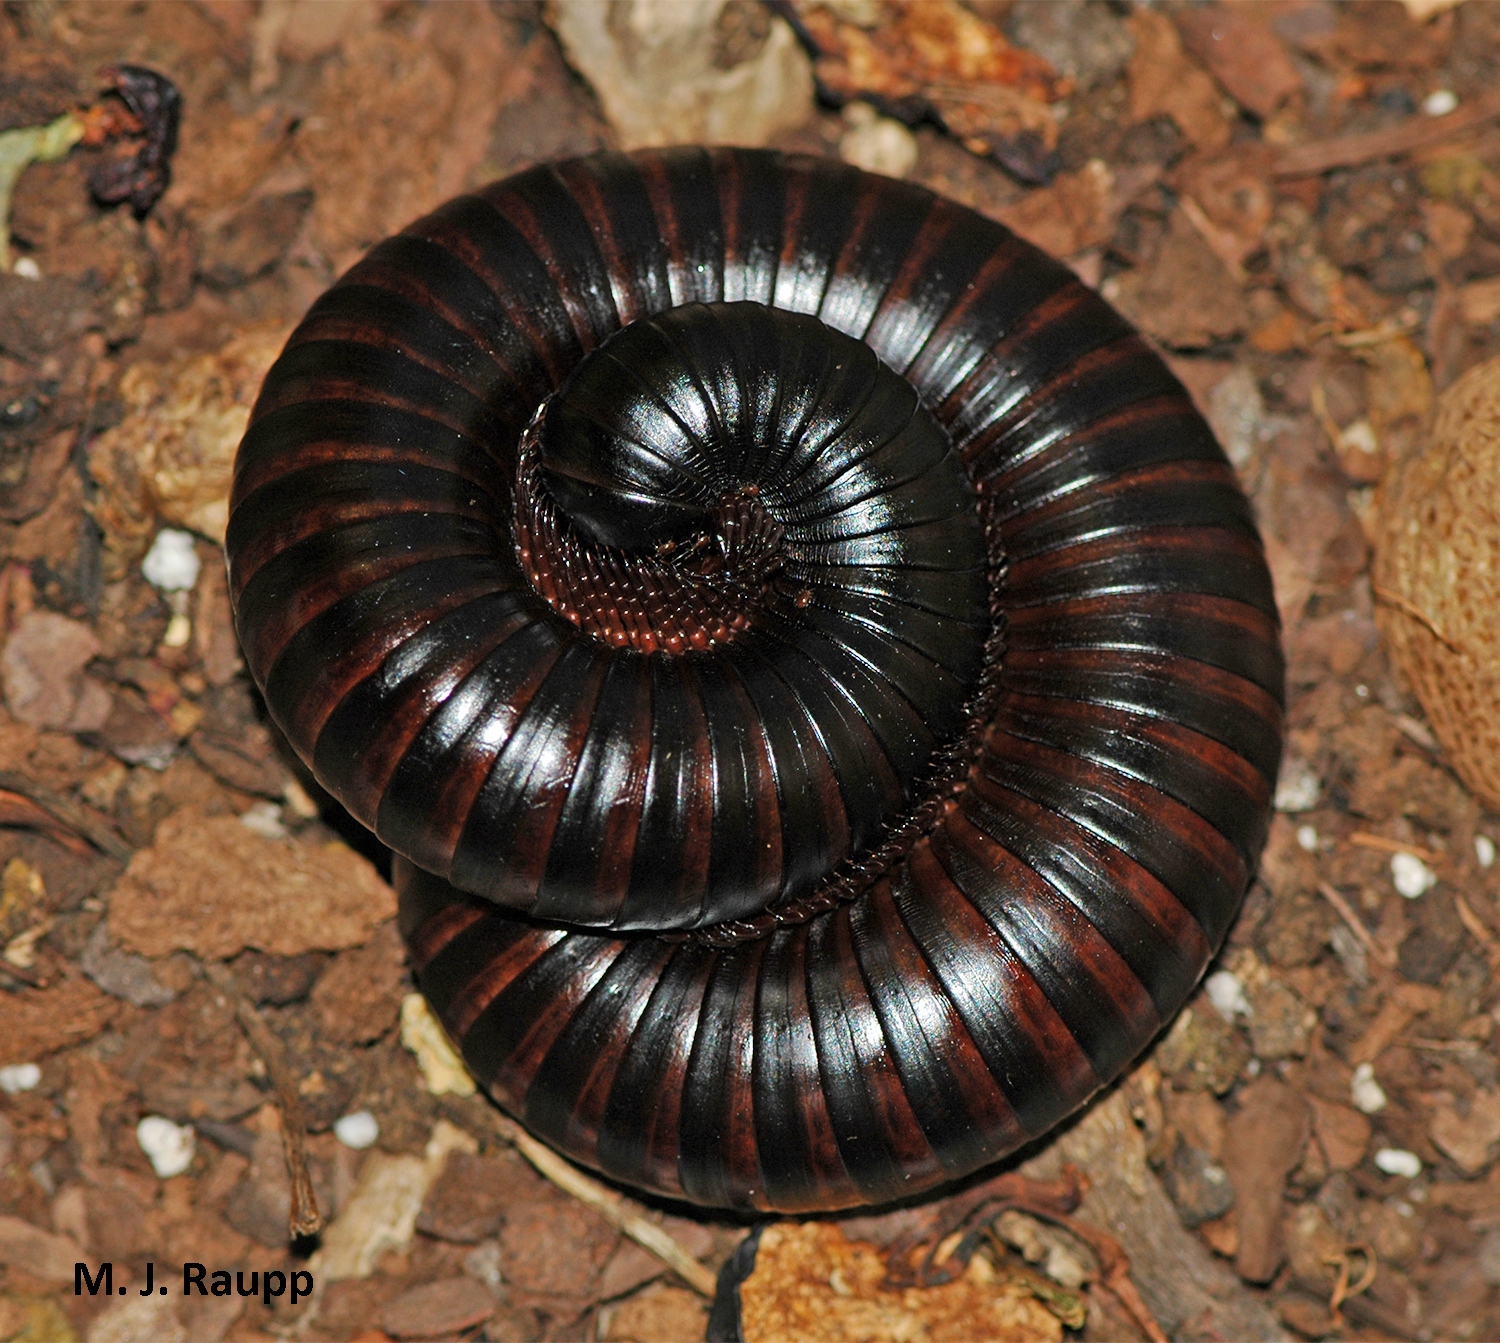 Curling into a tight ball is a common defense of millipedes.